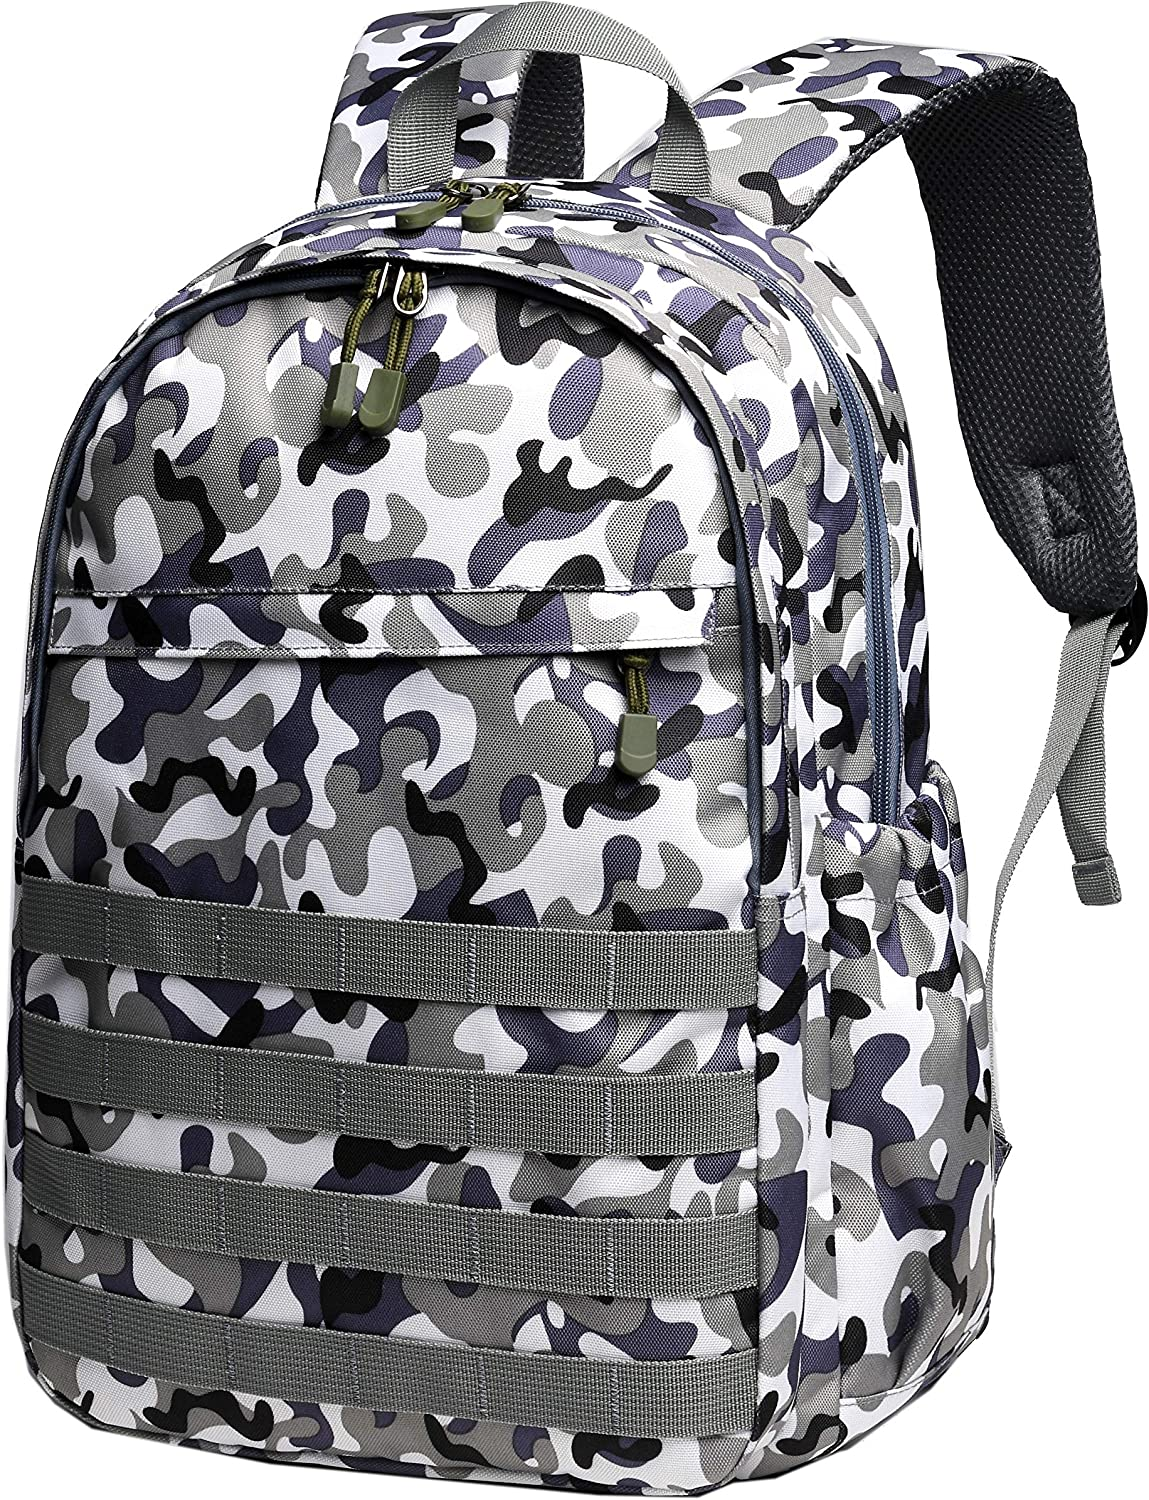 Light Weight Camouflage Design School Bag Kids Backpack Boys Over 10 Years Old